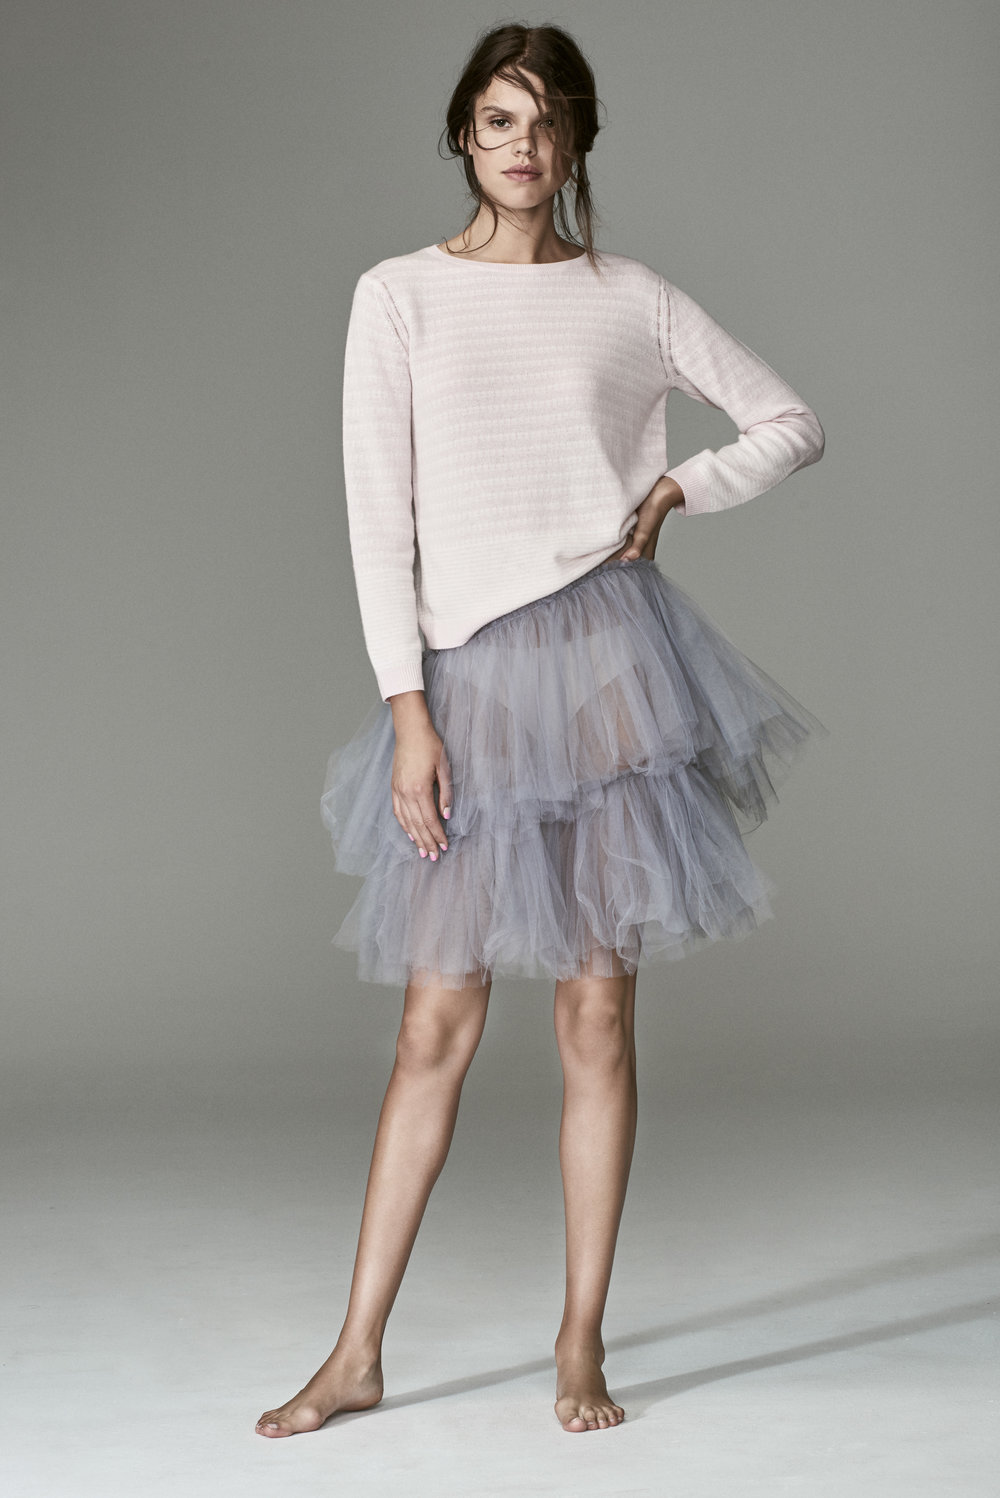 FEELING FESTIVE? REIMAGINE OUR EXCLUSIVE PINK LEMONAID KNIT SWEATER WITH A TULLE SKIRT; PERFECT FOR A PARTY OR BALLET CLASS. CLICK FOR DETAILS.